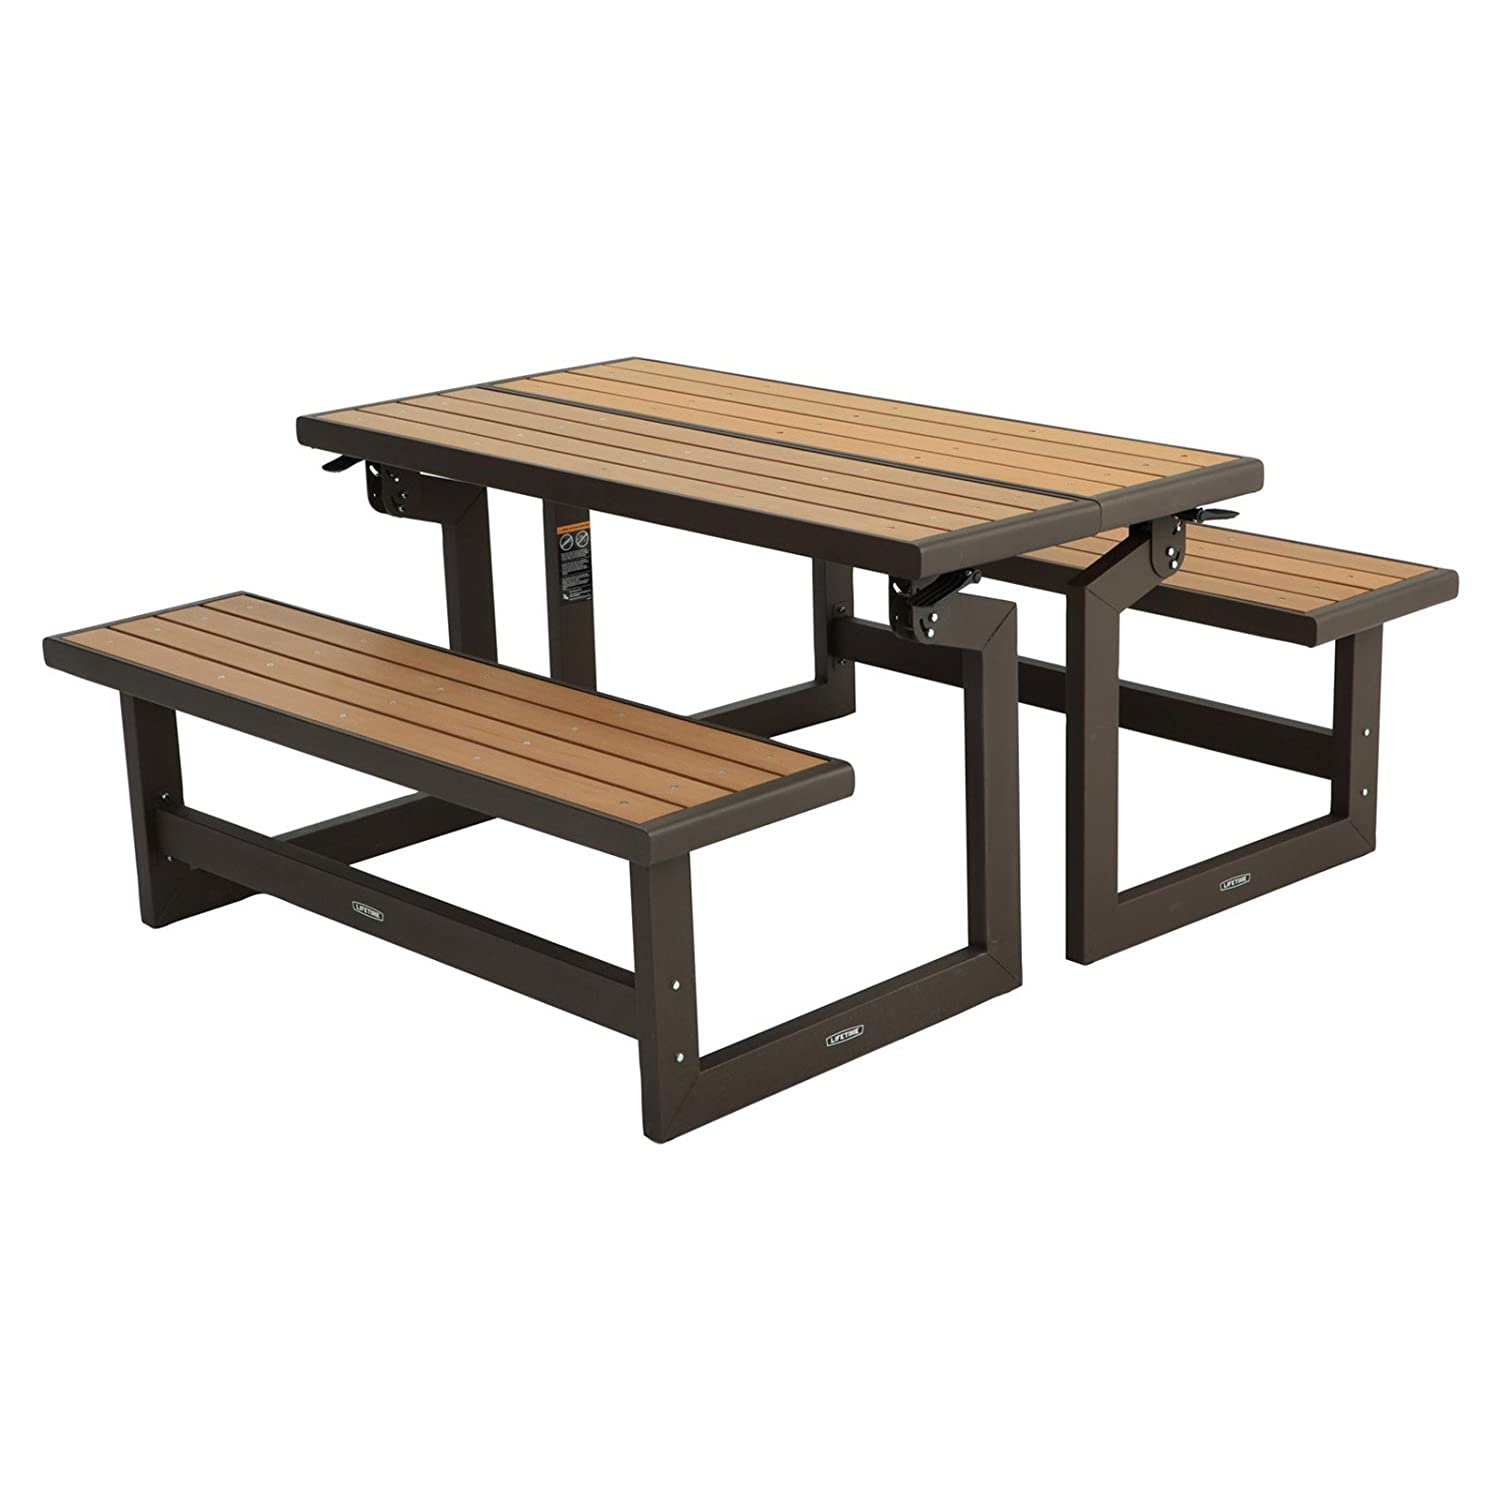 Amazon.com : Lifetime Products Wood Grain Convertible Folding Picnic Table  : Garden U0026 Outdoor